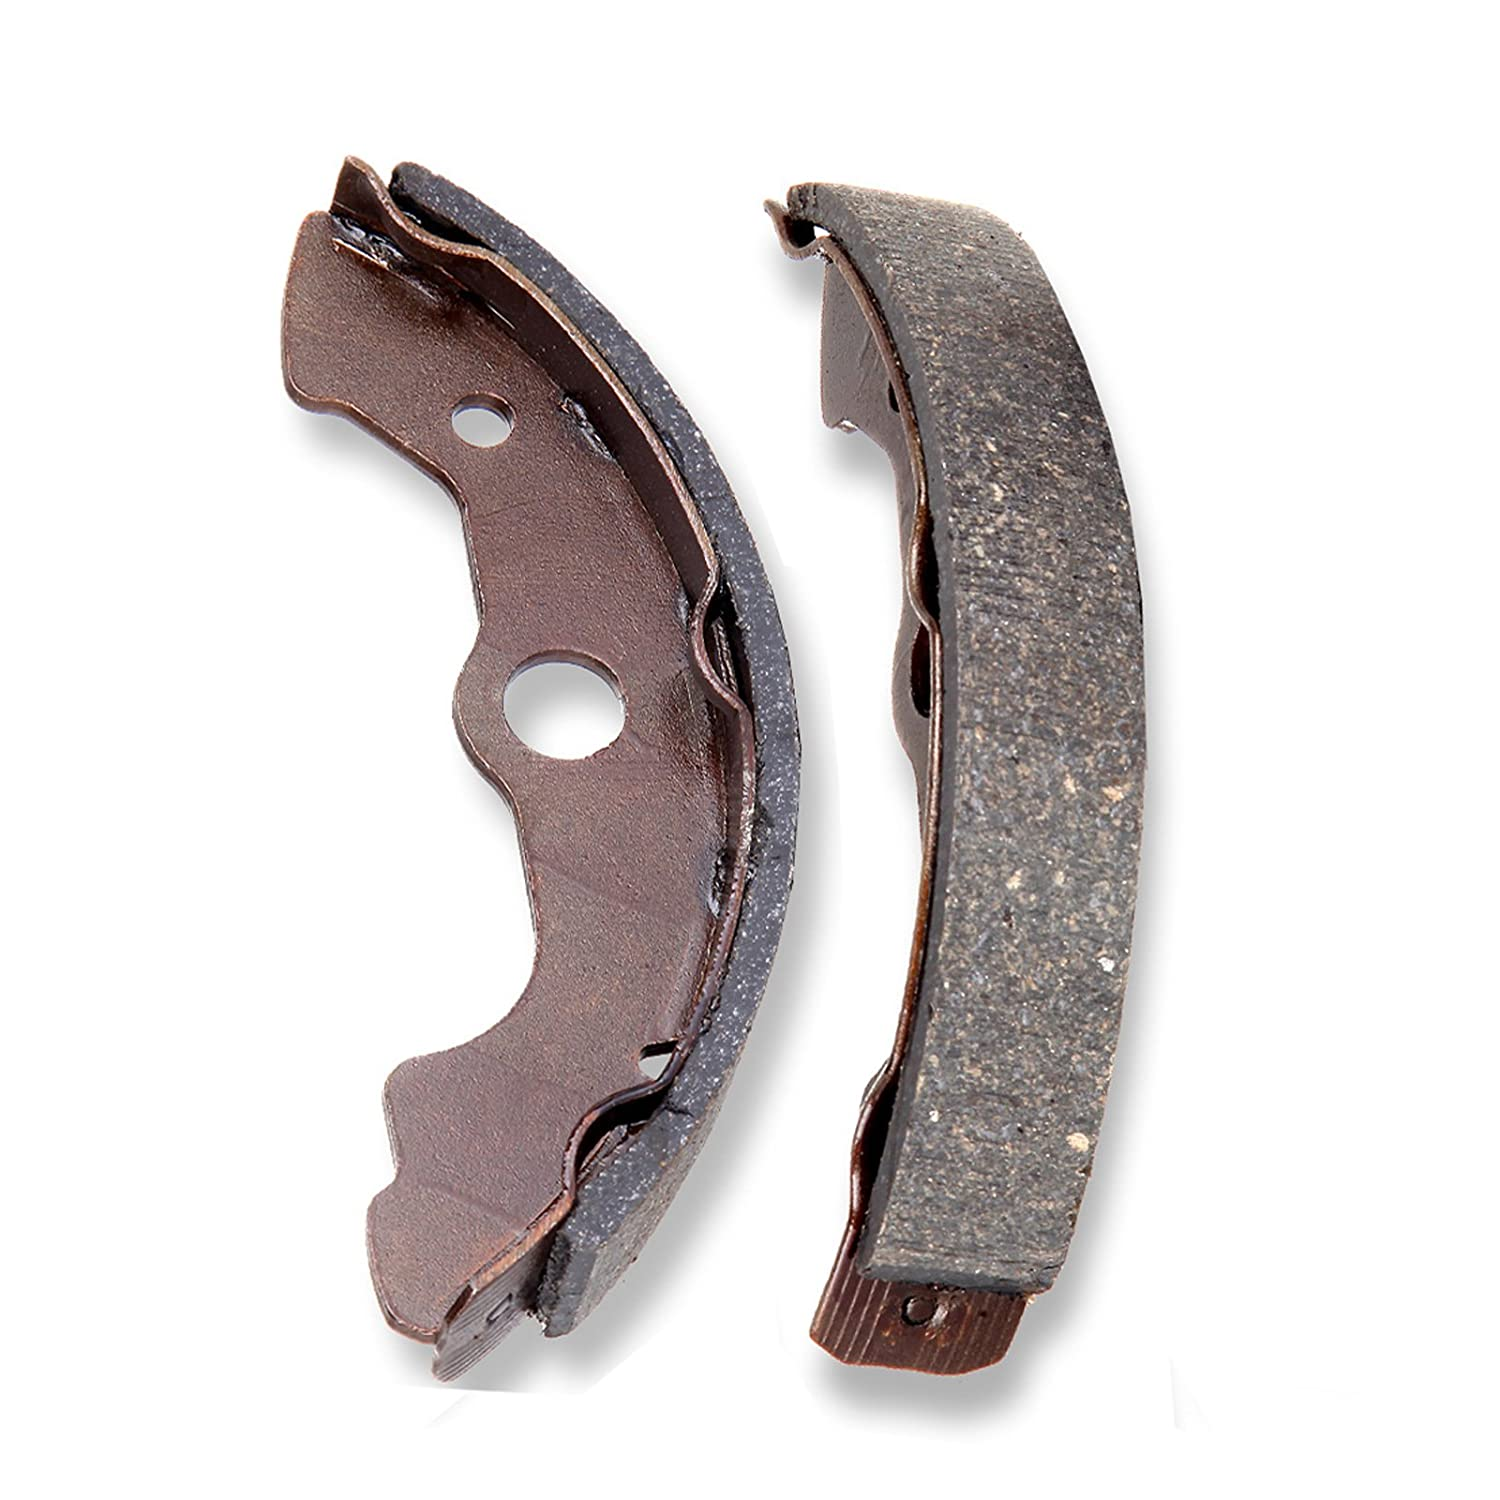 SCITOO High Performance Brake Shoes Fit for 97-03 Honda Foreman 400,98-04 Honda Foreman 450,95-96 Honda FourTrax Foreman 400,00-06 Honda Rancher 350,95 96 04 07 Honda Rancher 400